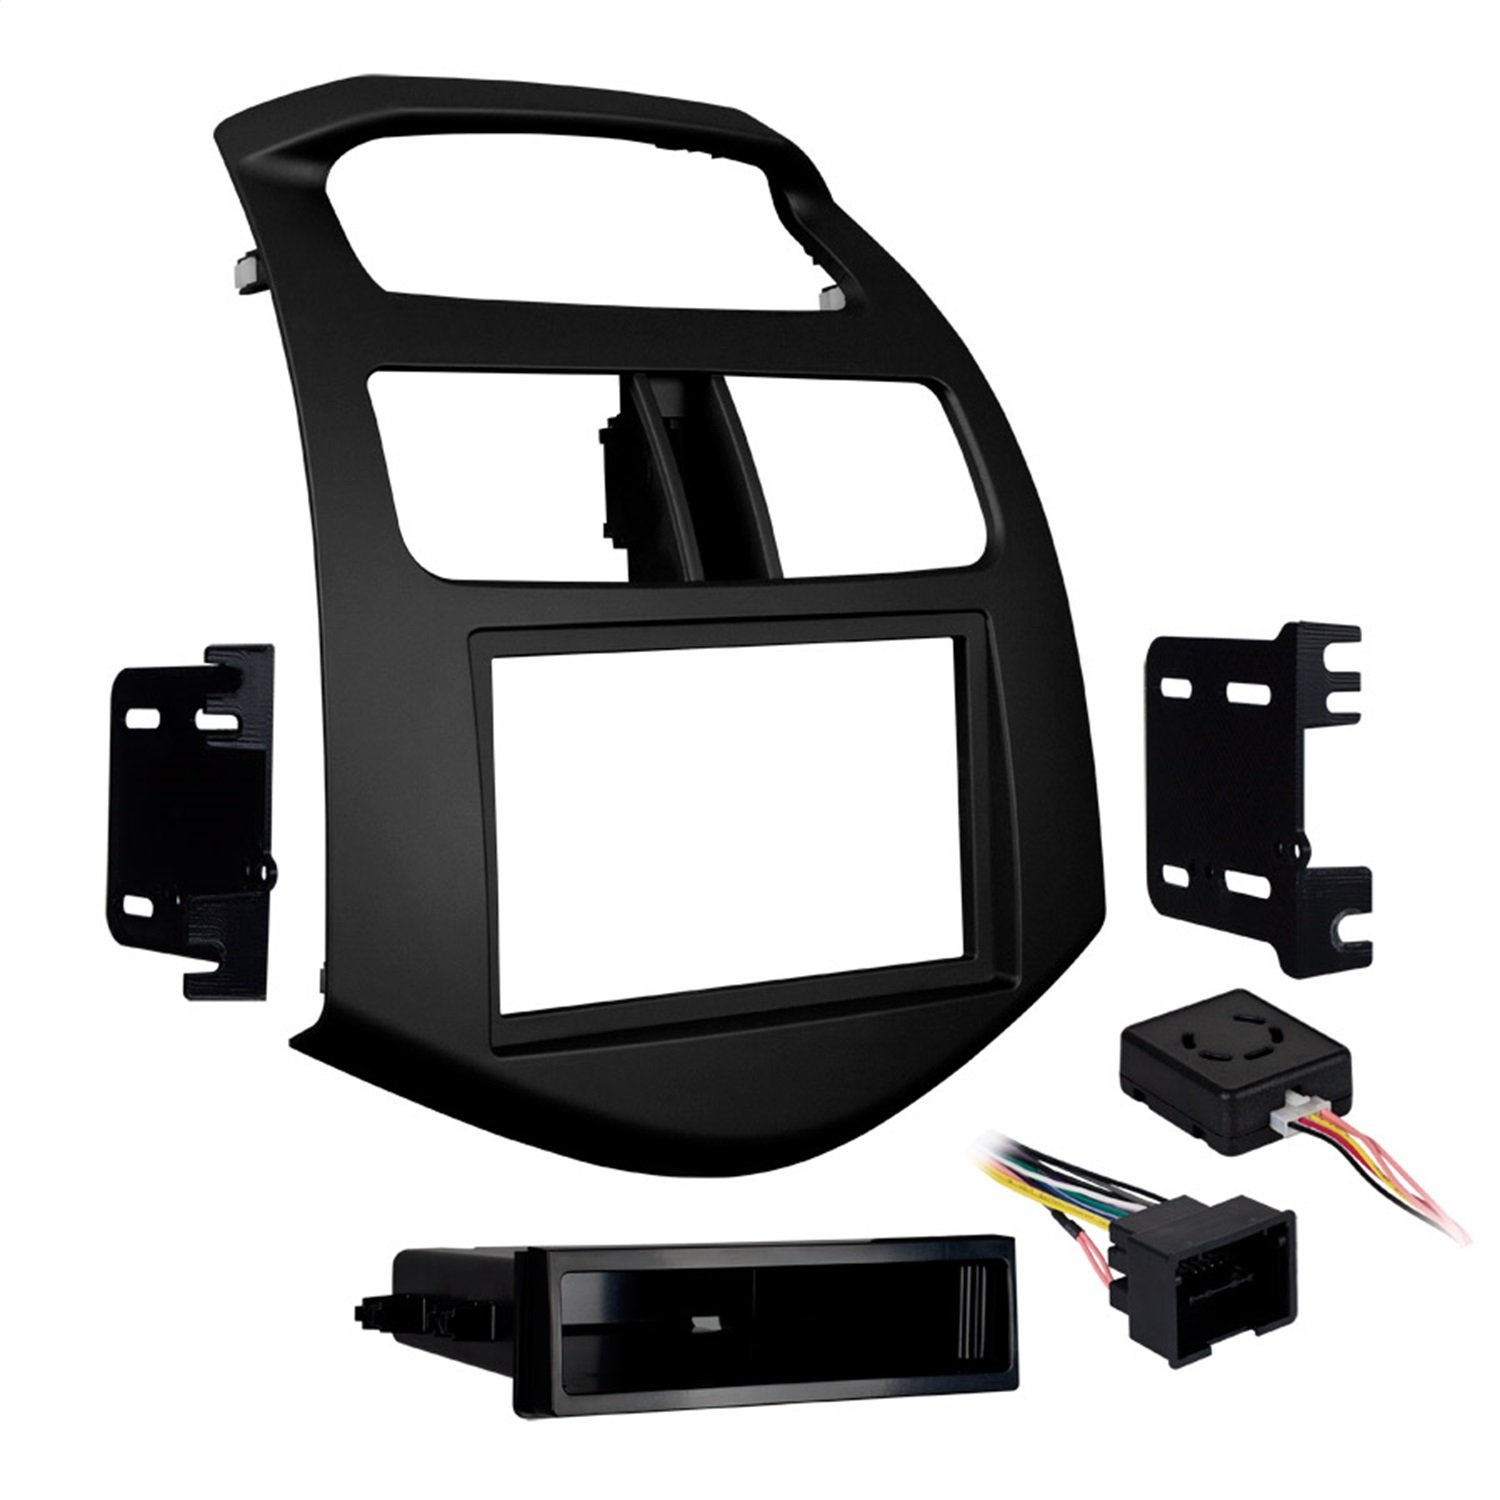 Metra 99-3309B-LC Single/Double DIN Stereo Installation Dash Kit for 2013-Up Chevy Spark (Matte Black) by Metra